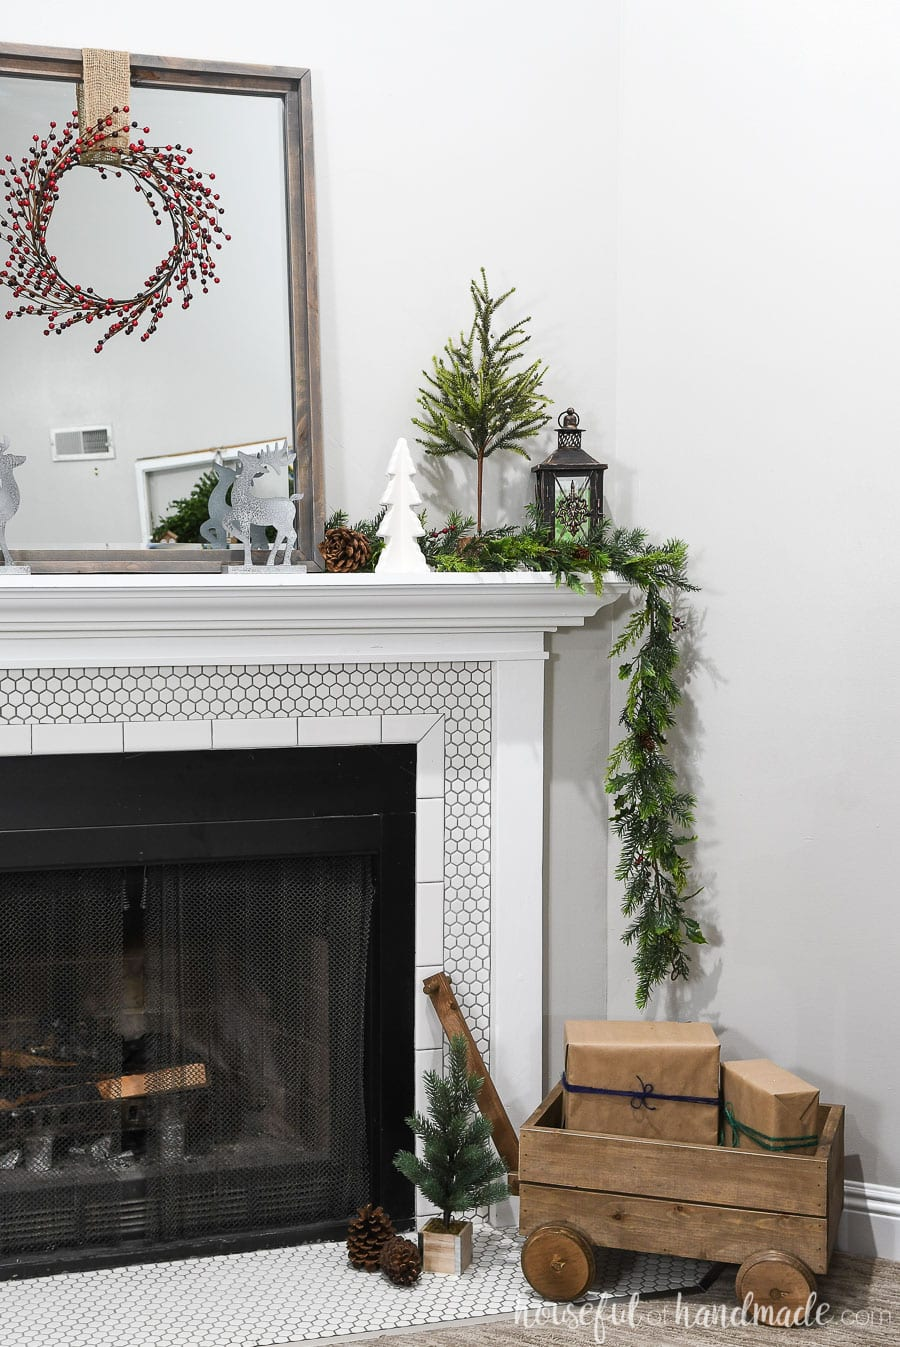 Side view of the mantel all decorated for Christmas with a wood wagon, mini Christmas trees, garland, and reindeer.